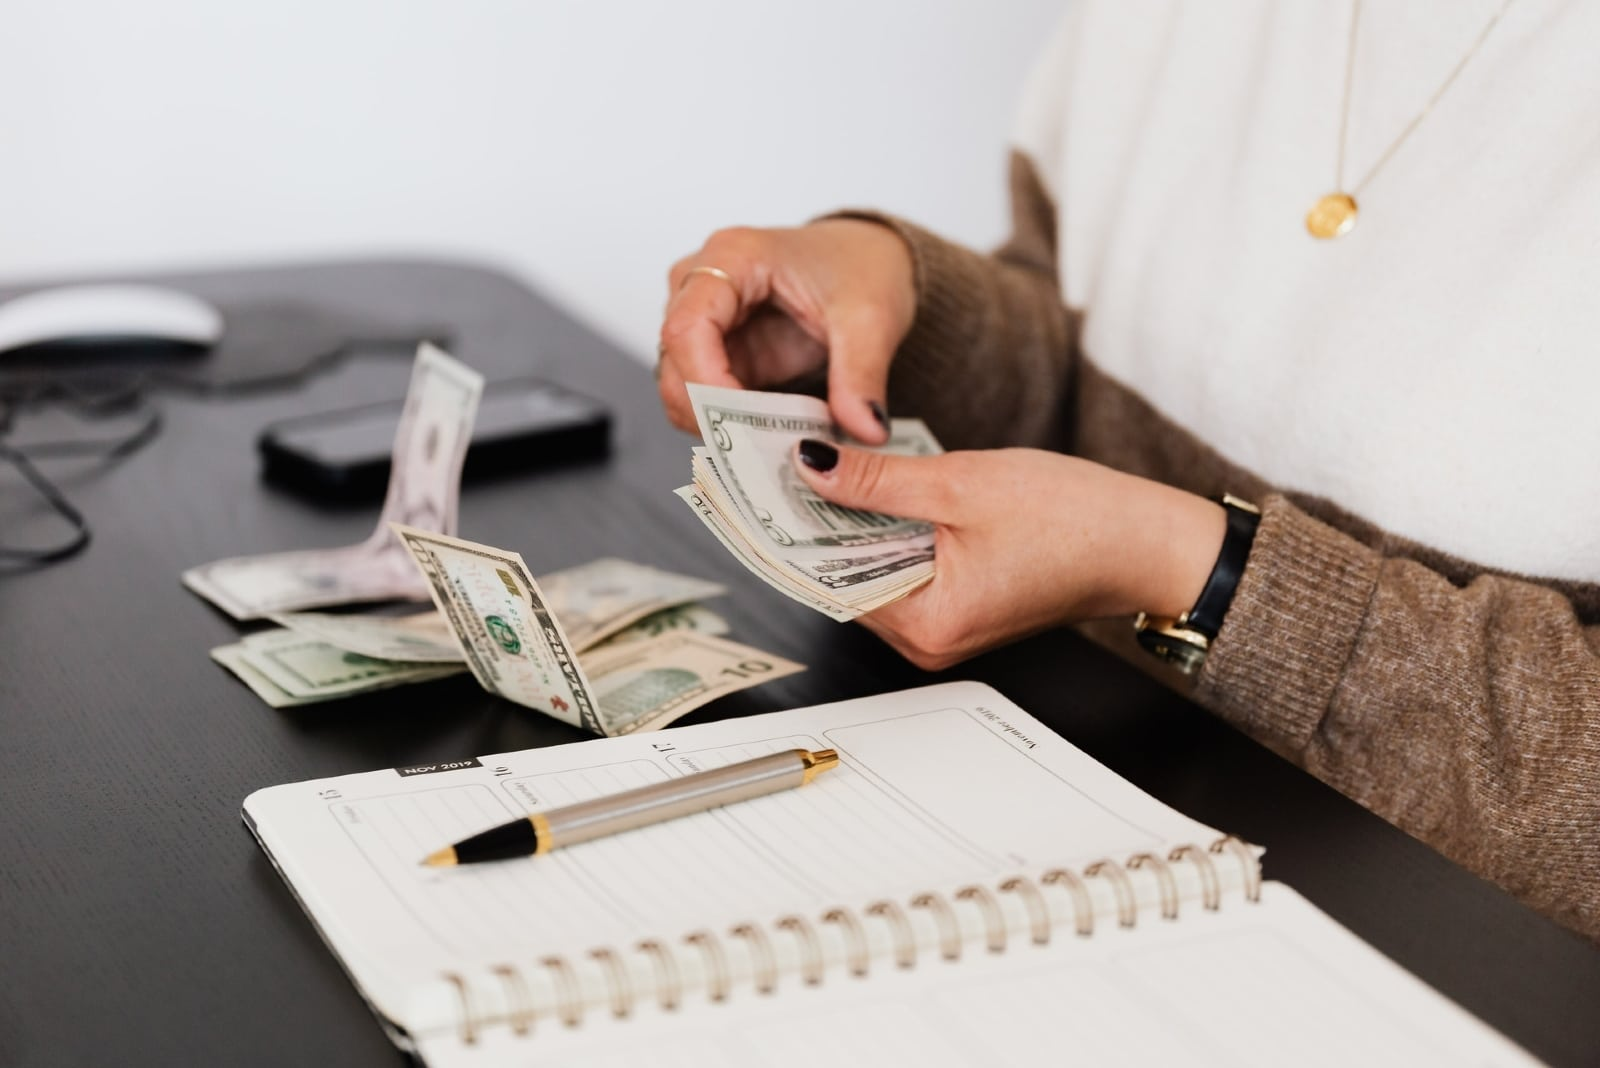 woman counting money while sitting at table